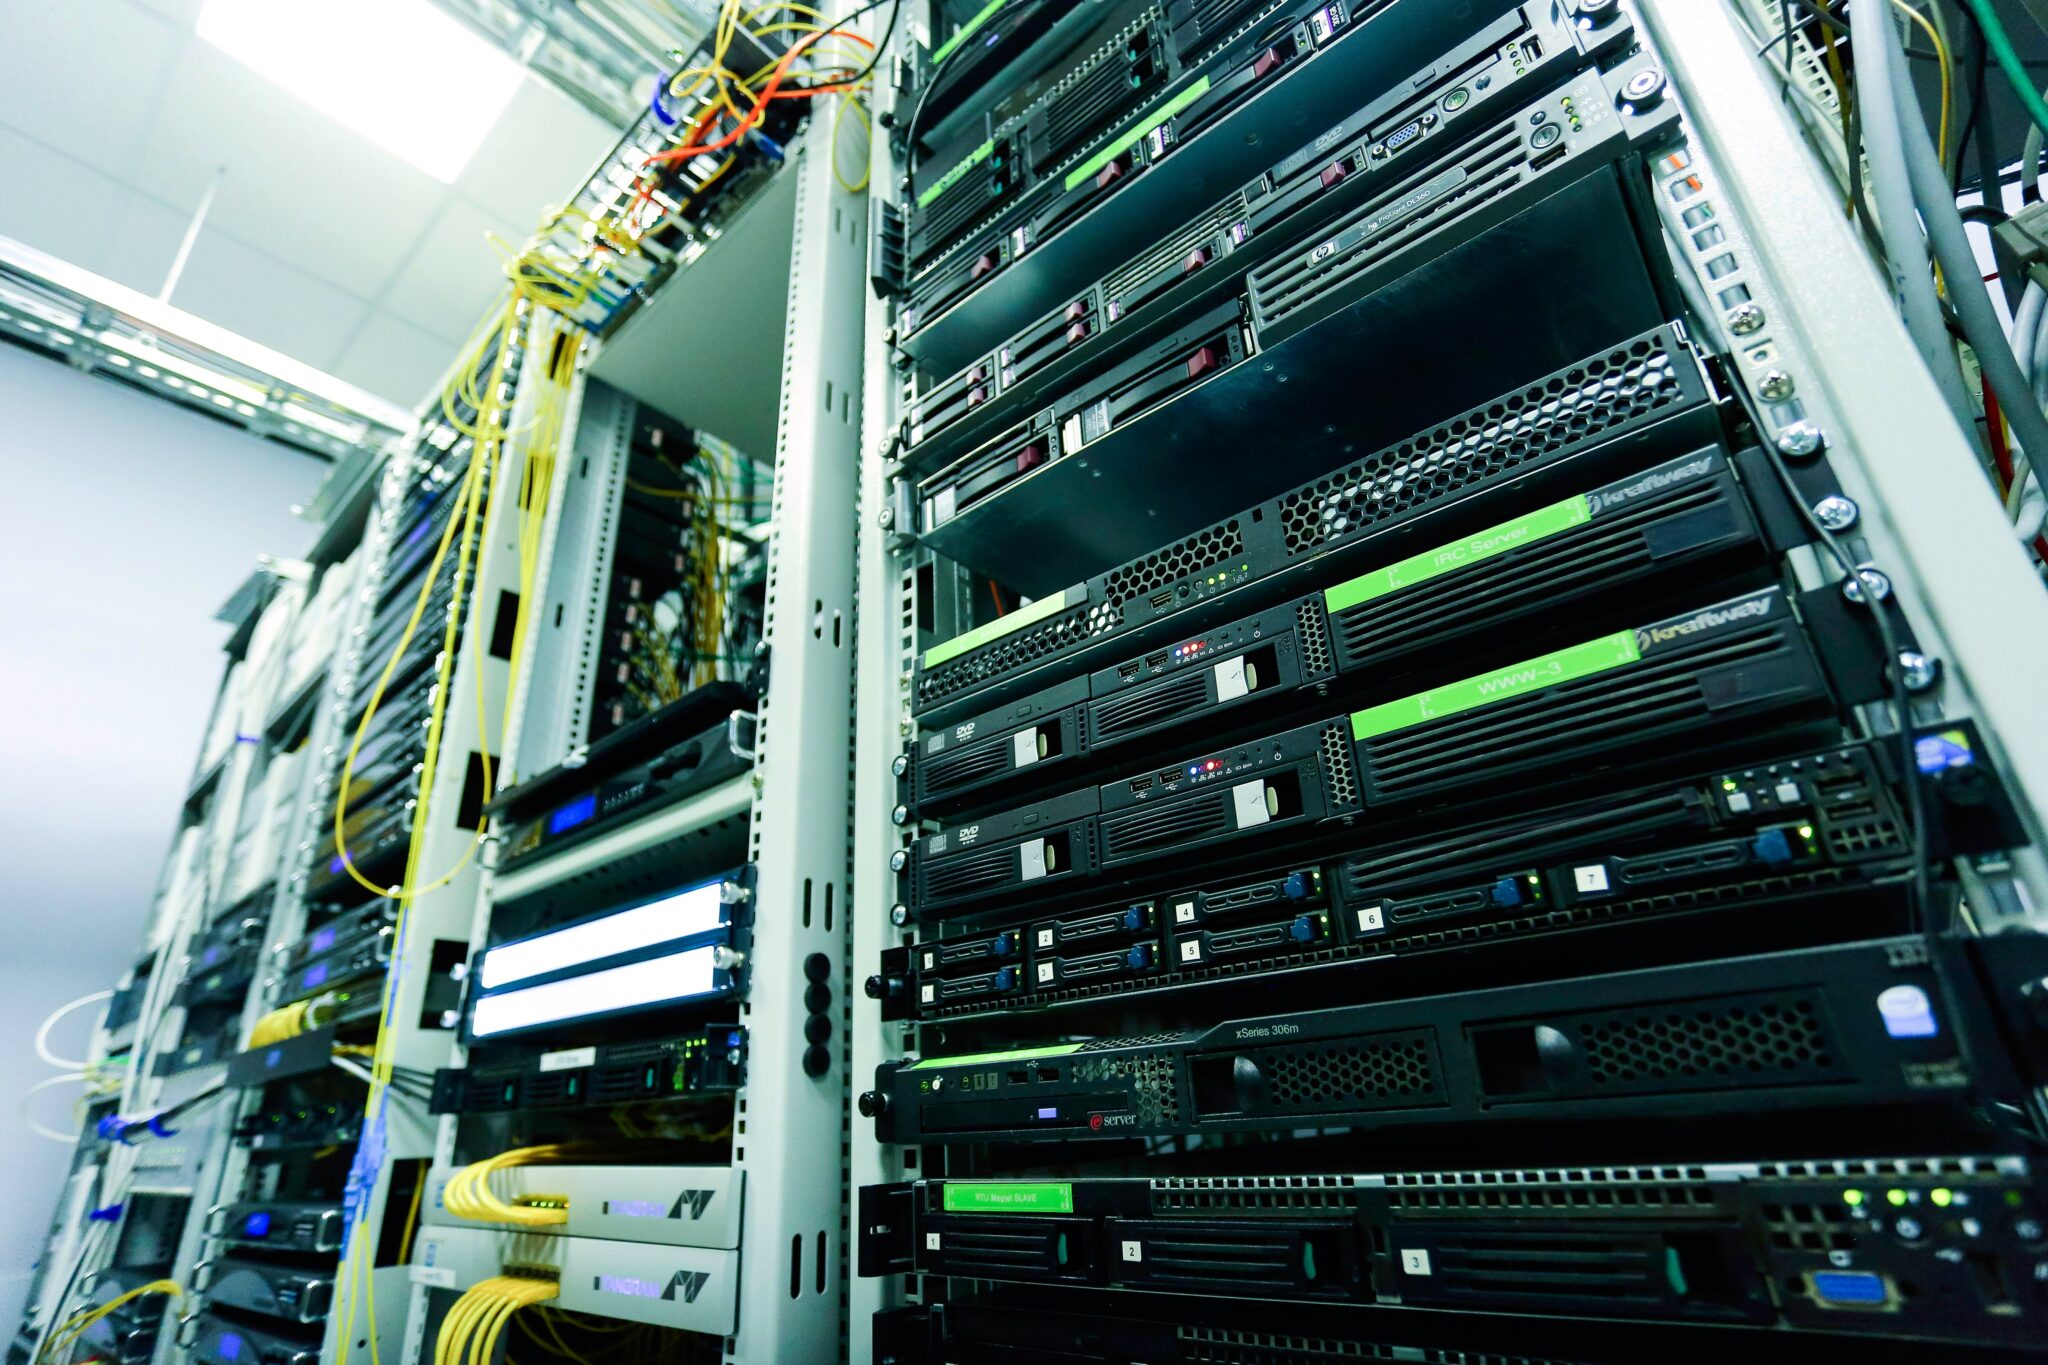 structured cabling installation in chicago, ethernet installation in chicago, chicago ethernet installation, data cable inc